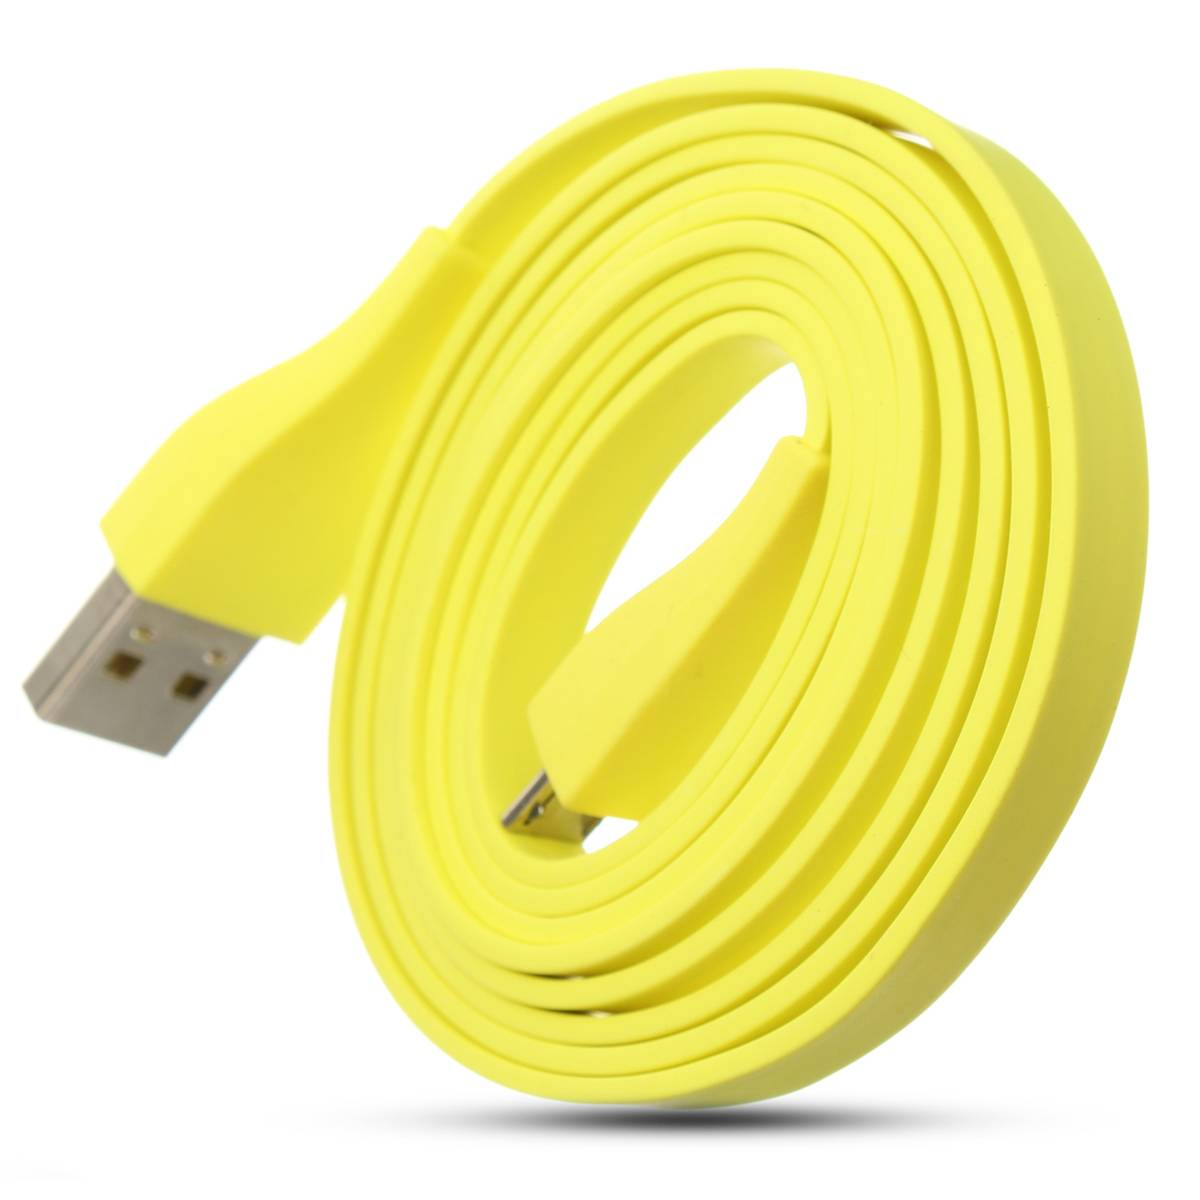 Newest 1.2M Micro USB PC Charger Flexible Cable Data Transfer USB Wire Cable For Logitech UE BOOM MEGA Bluetooth Speaker Charger